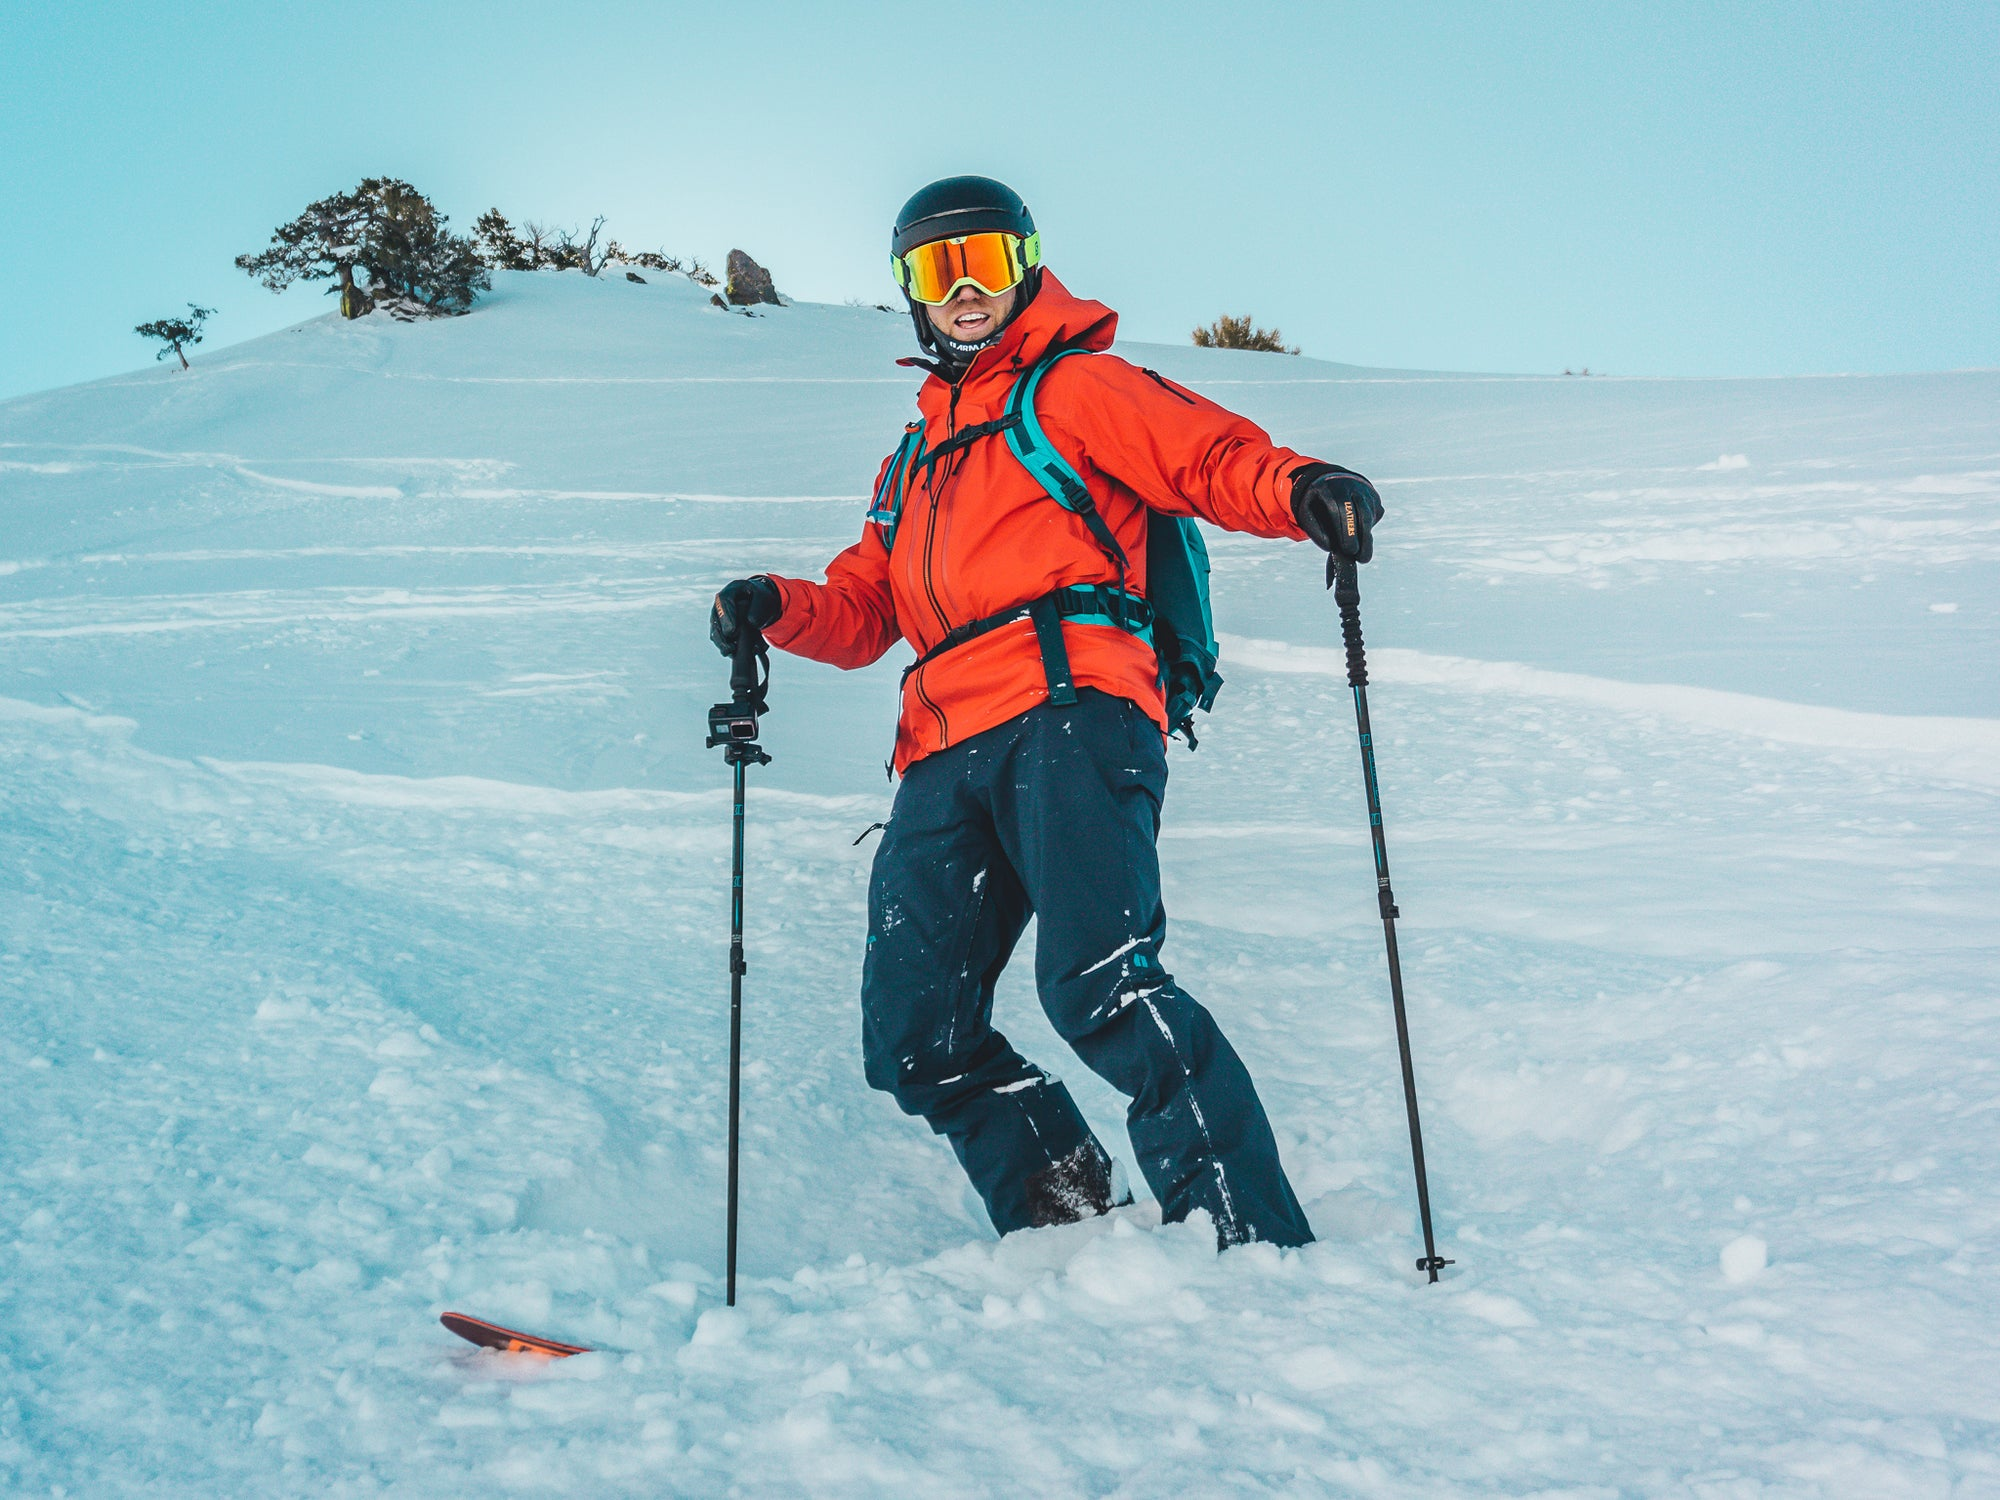 Insider's Guide to Sidecountry Skiing at Snowbasin